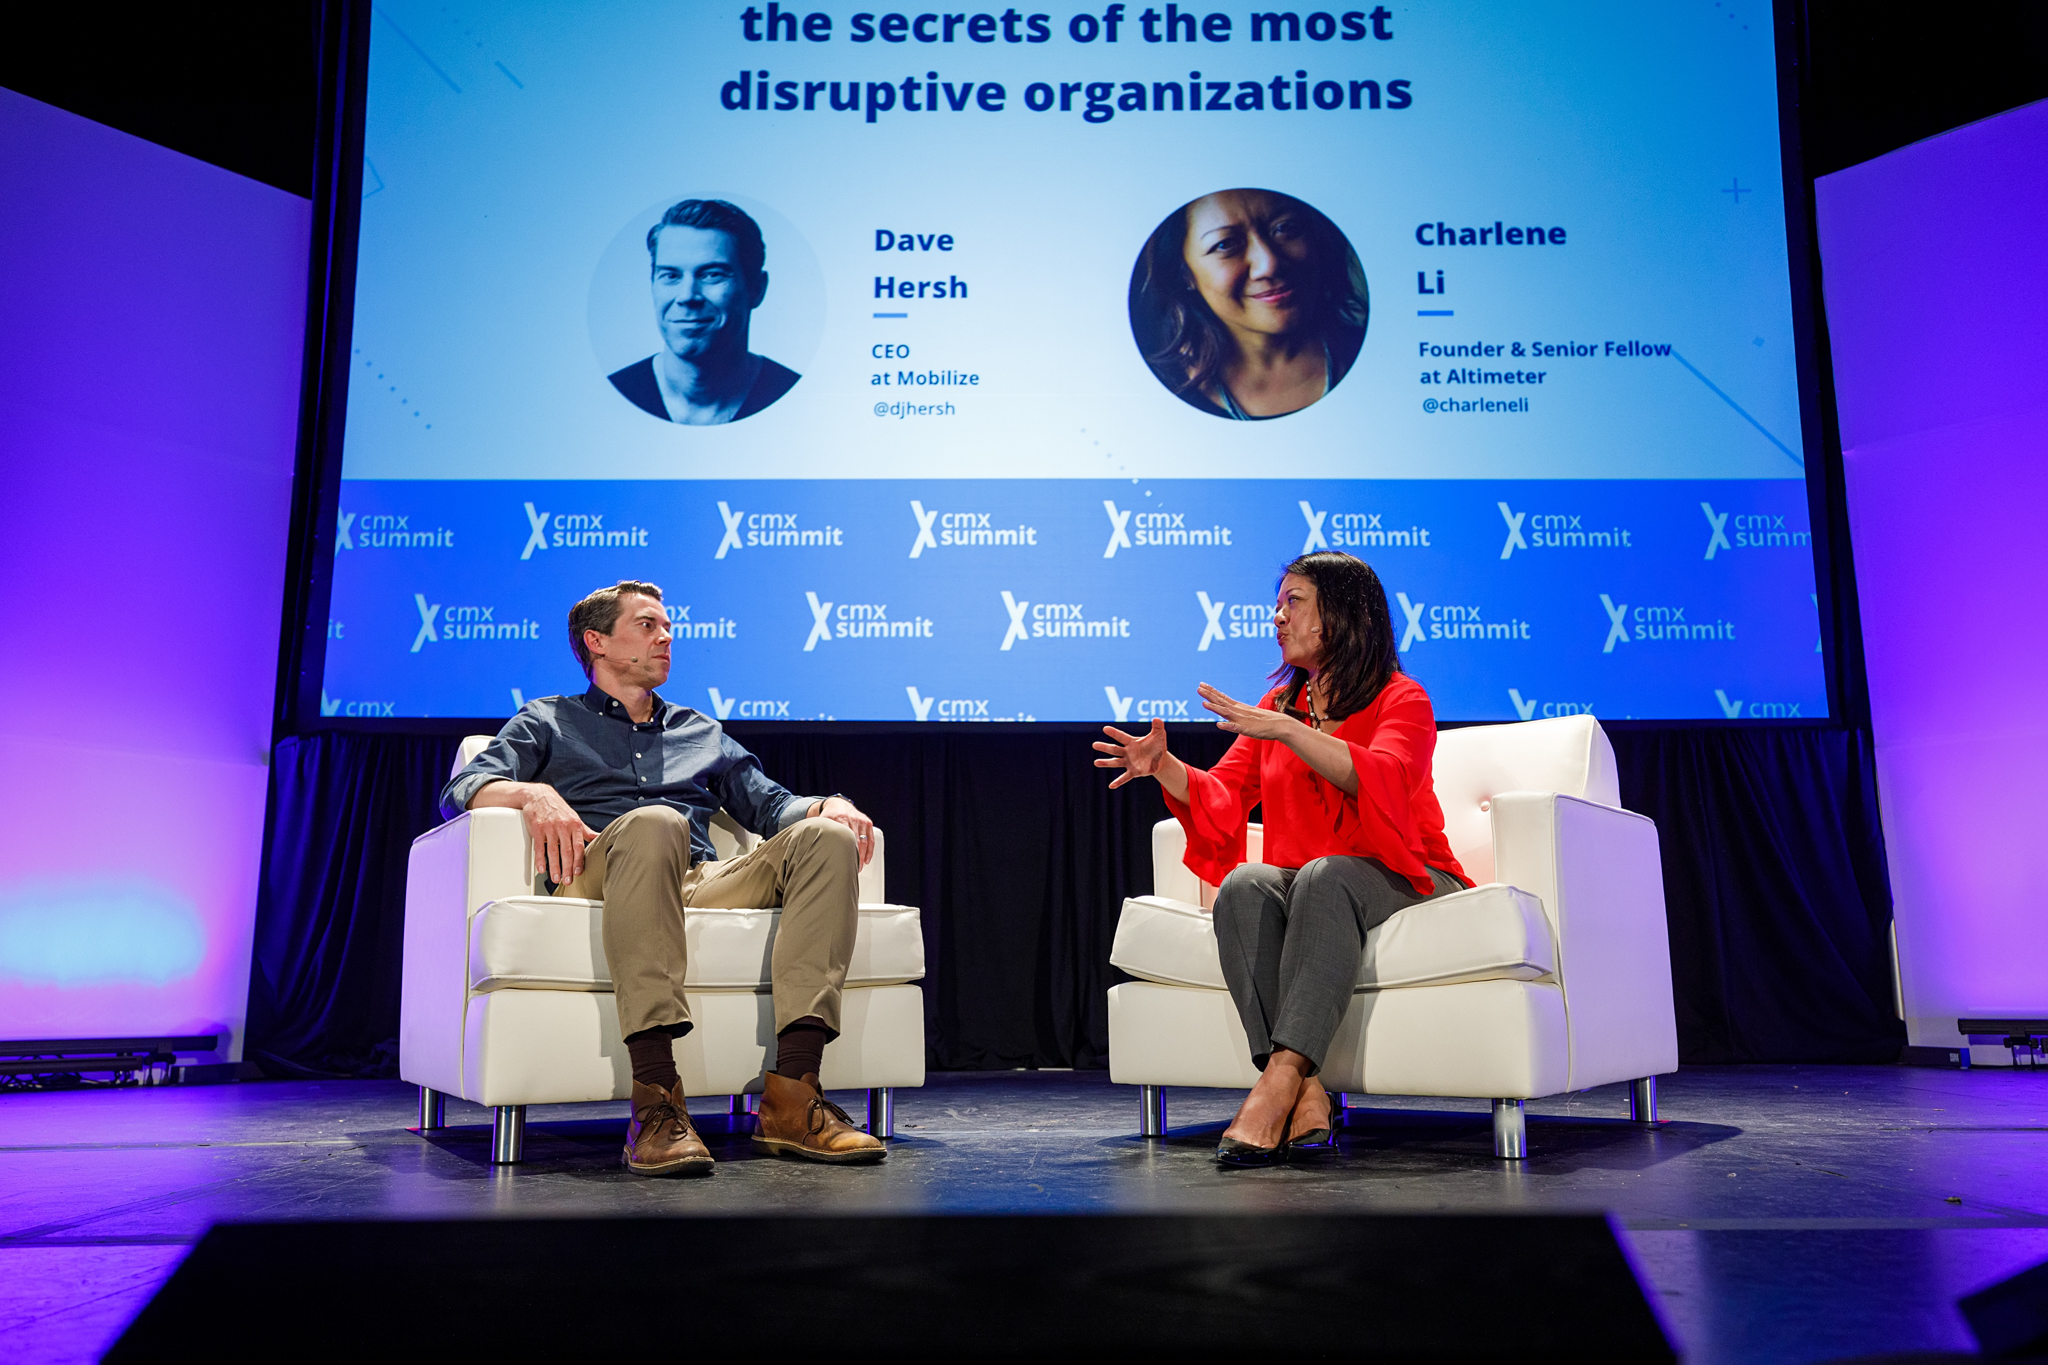 Notes and Highlights: The Secrets of the Most Disruptive Organizations